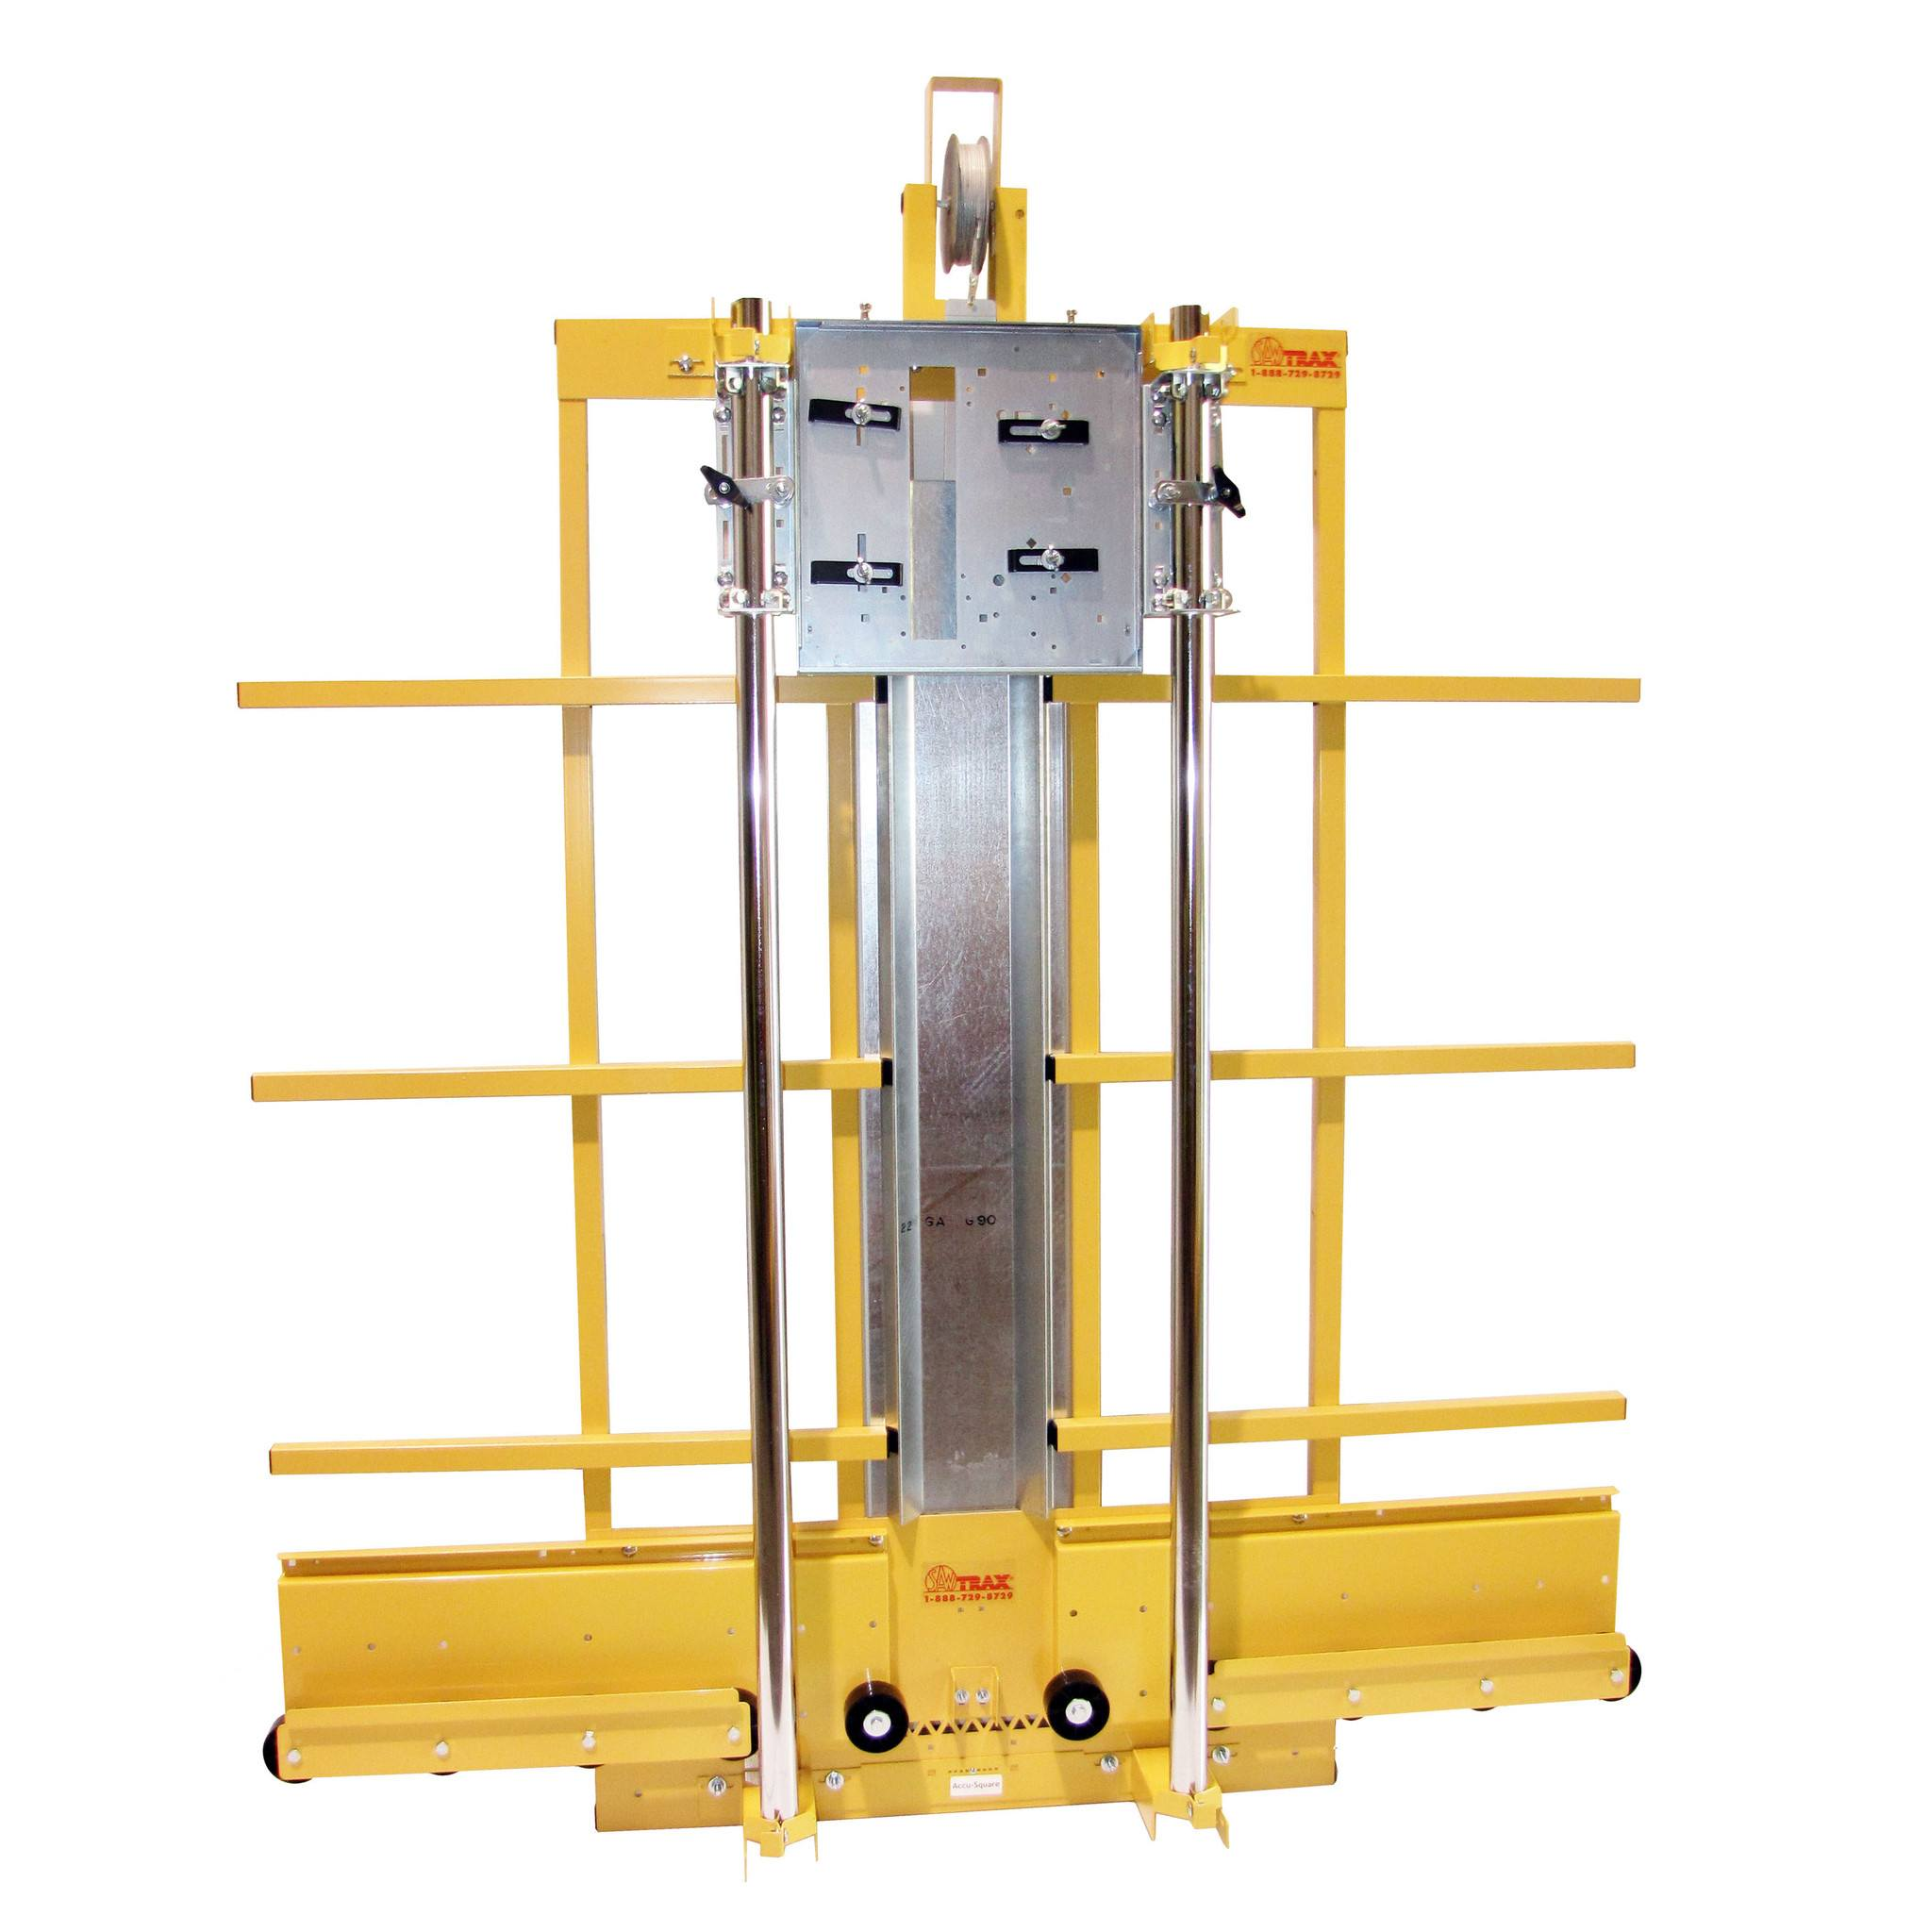 Yellow Vertical Panel Saw by SawTrax